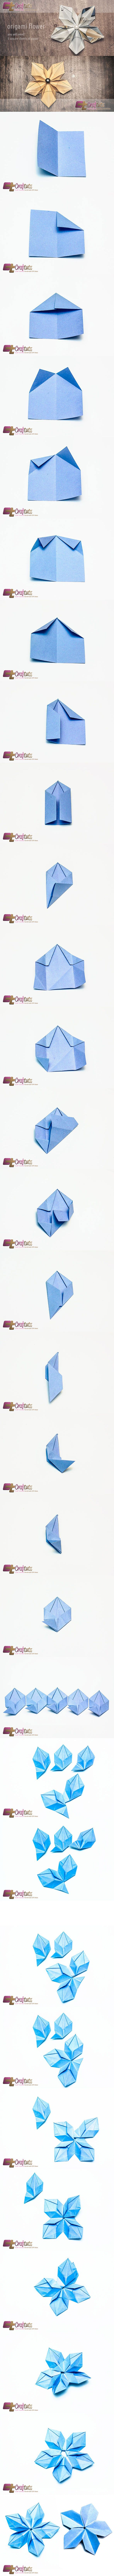 Origami Flower Video Tutorial & Step-by-Step Instructions from craftuts.com